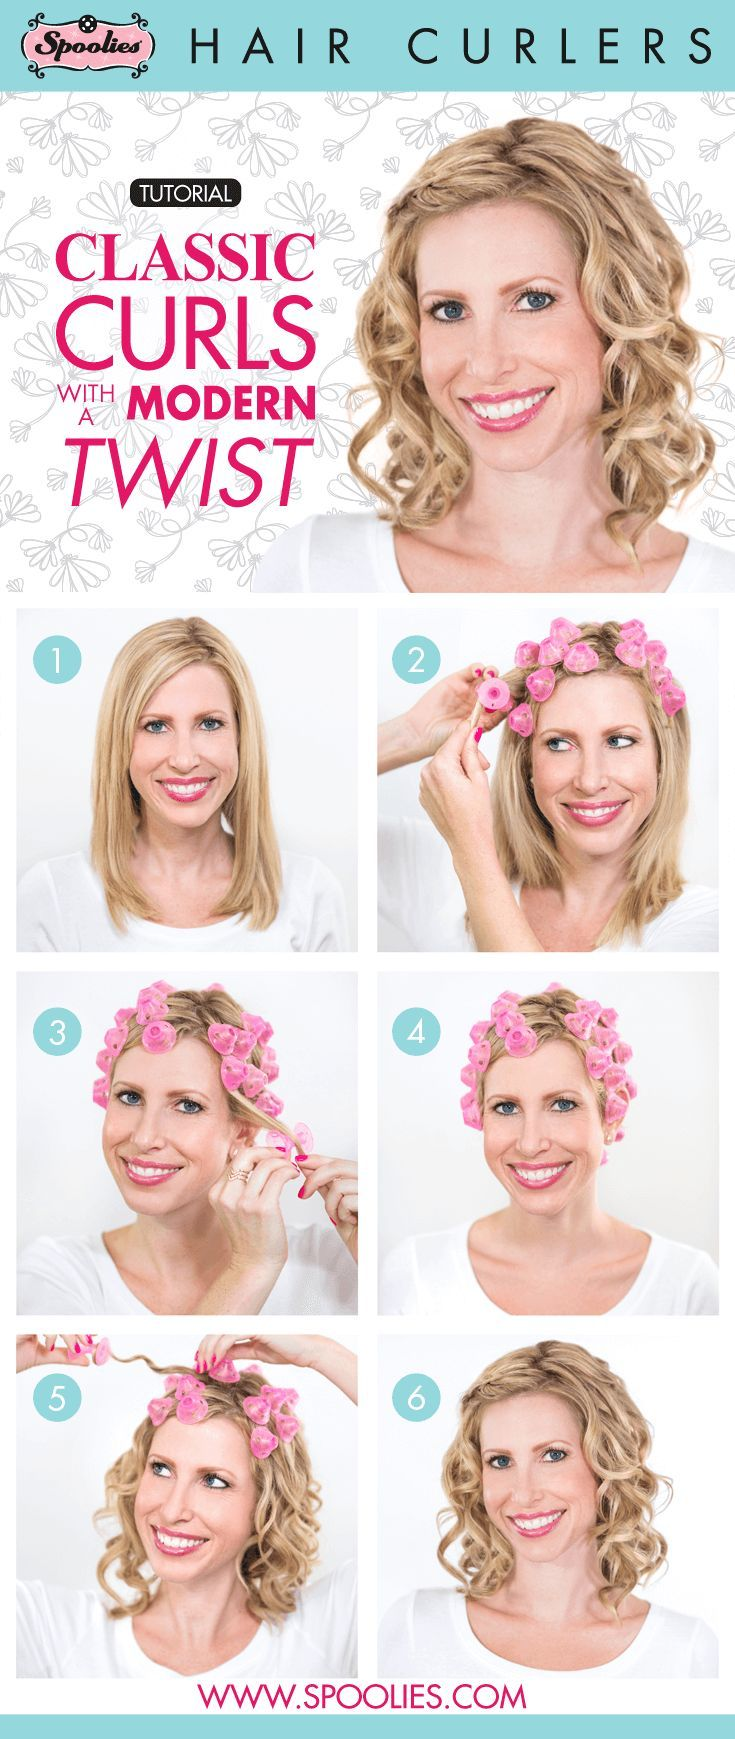 6 steps for Curly hair | Hottest Hairstyles for Women 2016 - use Spoolies Hair curlers for messy beach waves and cute pin curls, this Spoolies tutorial will show you how to get fabulous curls without the heat damage, or annoying pins and clips. www.spoolies.com